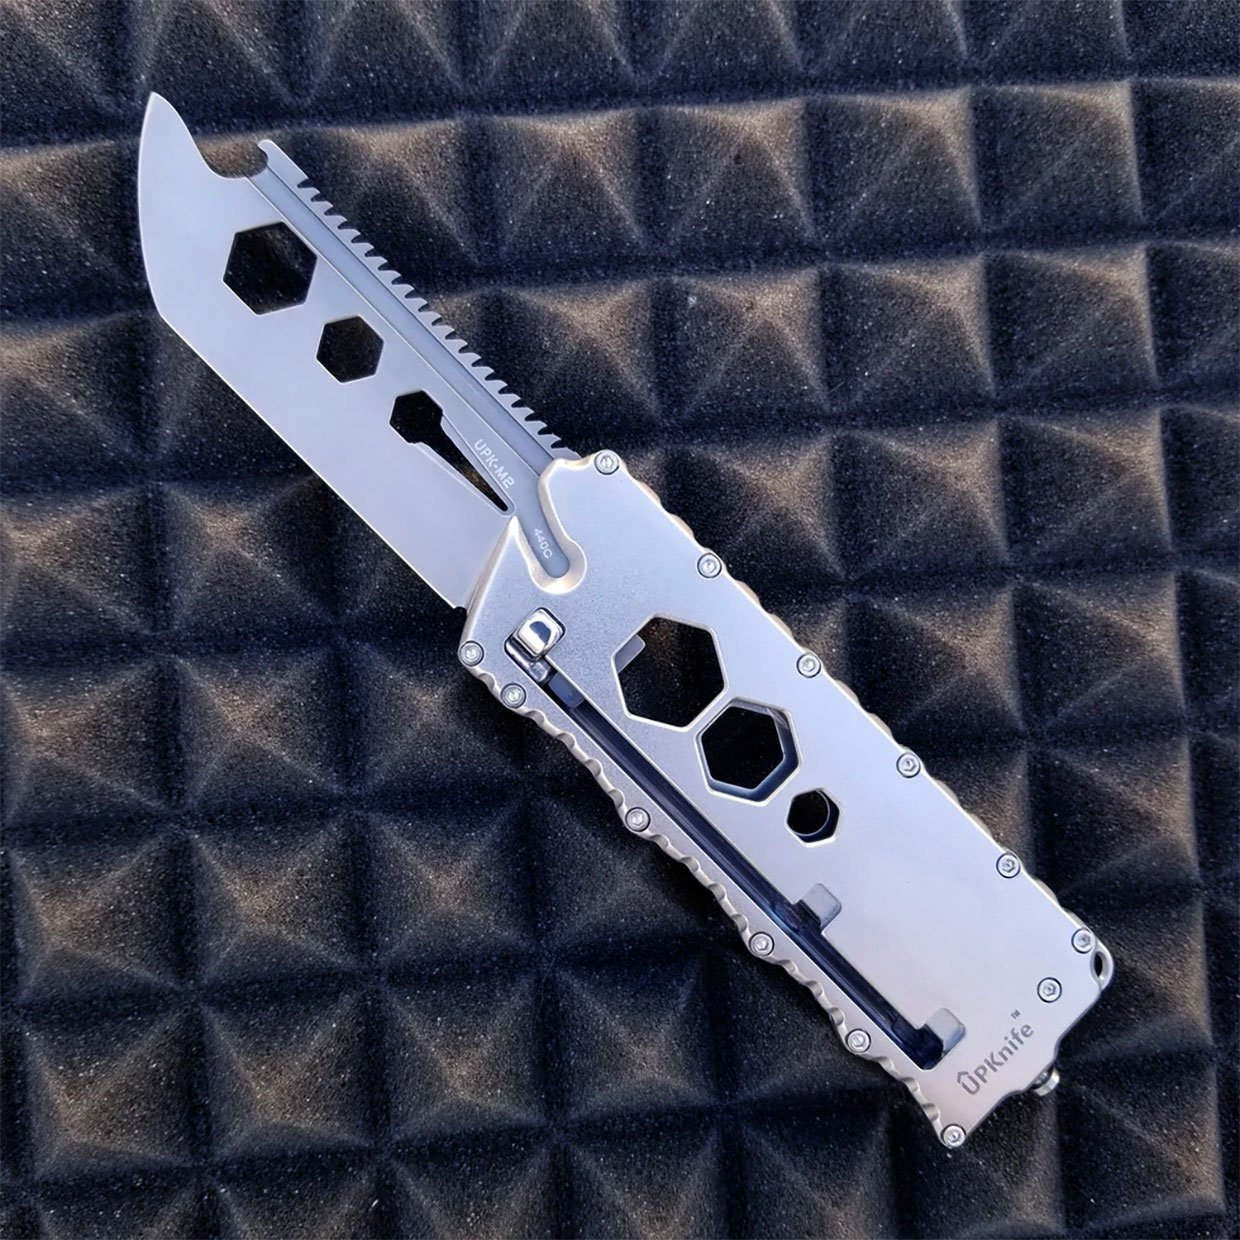 UPK-M2 Multitool Knife